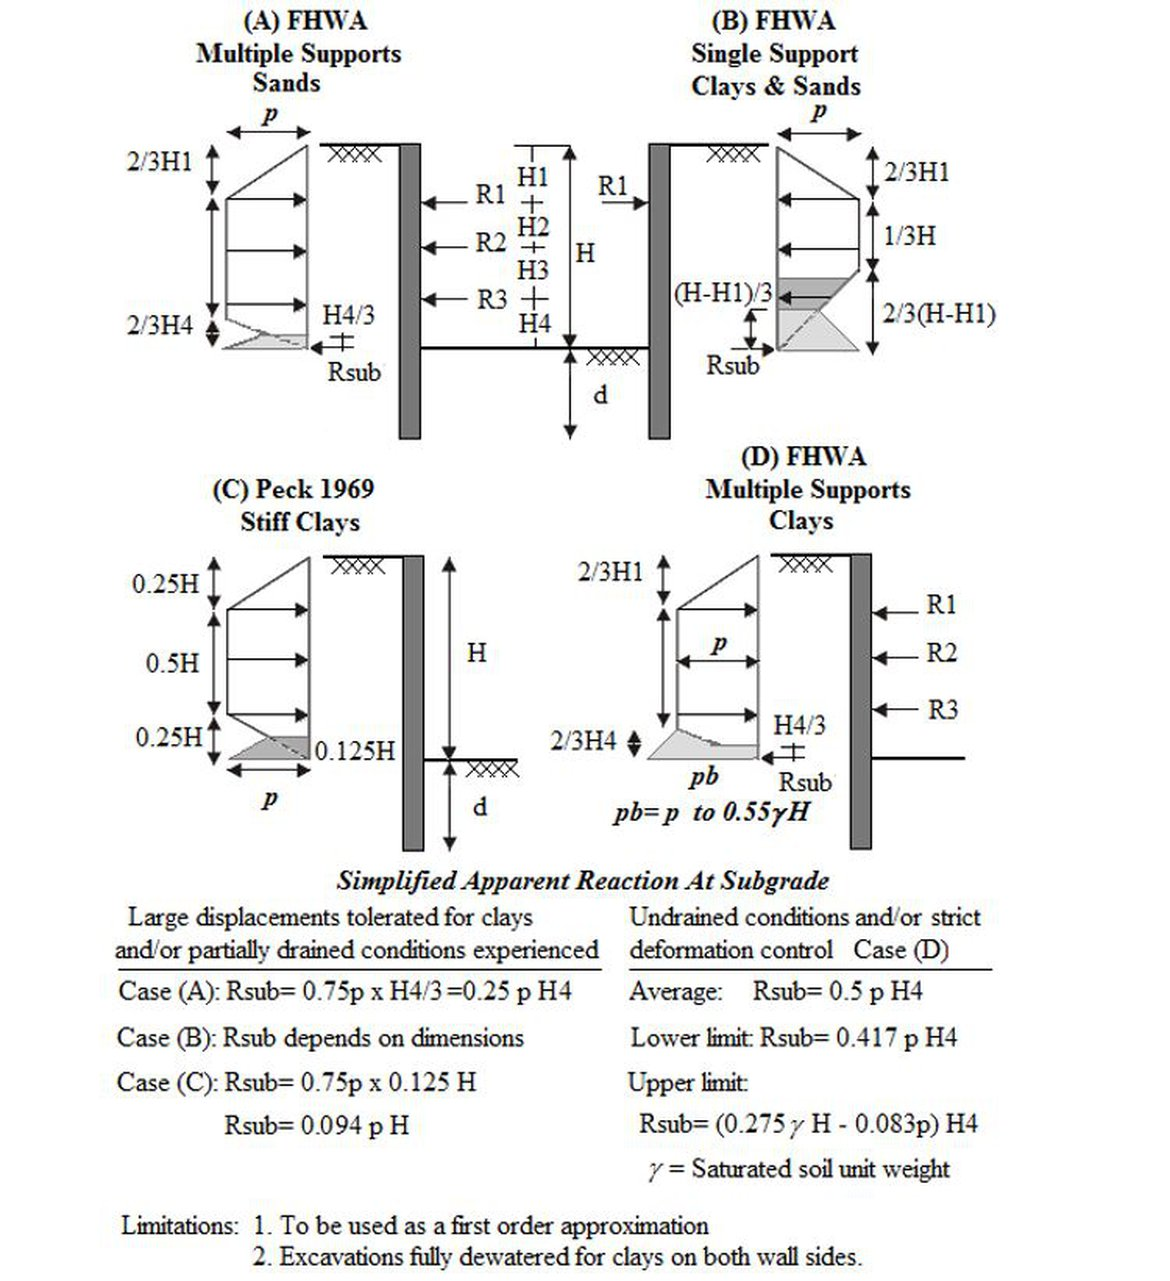 Modifications to stiff clay and fhwa diagrams deepex figure proposed modifications to stiff clay and fhwa apparent lateral earth pressure diagrams konstantakos 2010 pooptronica